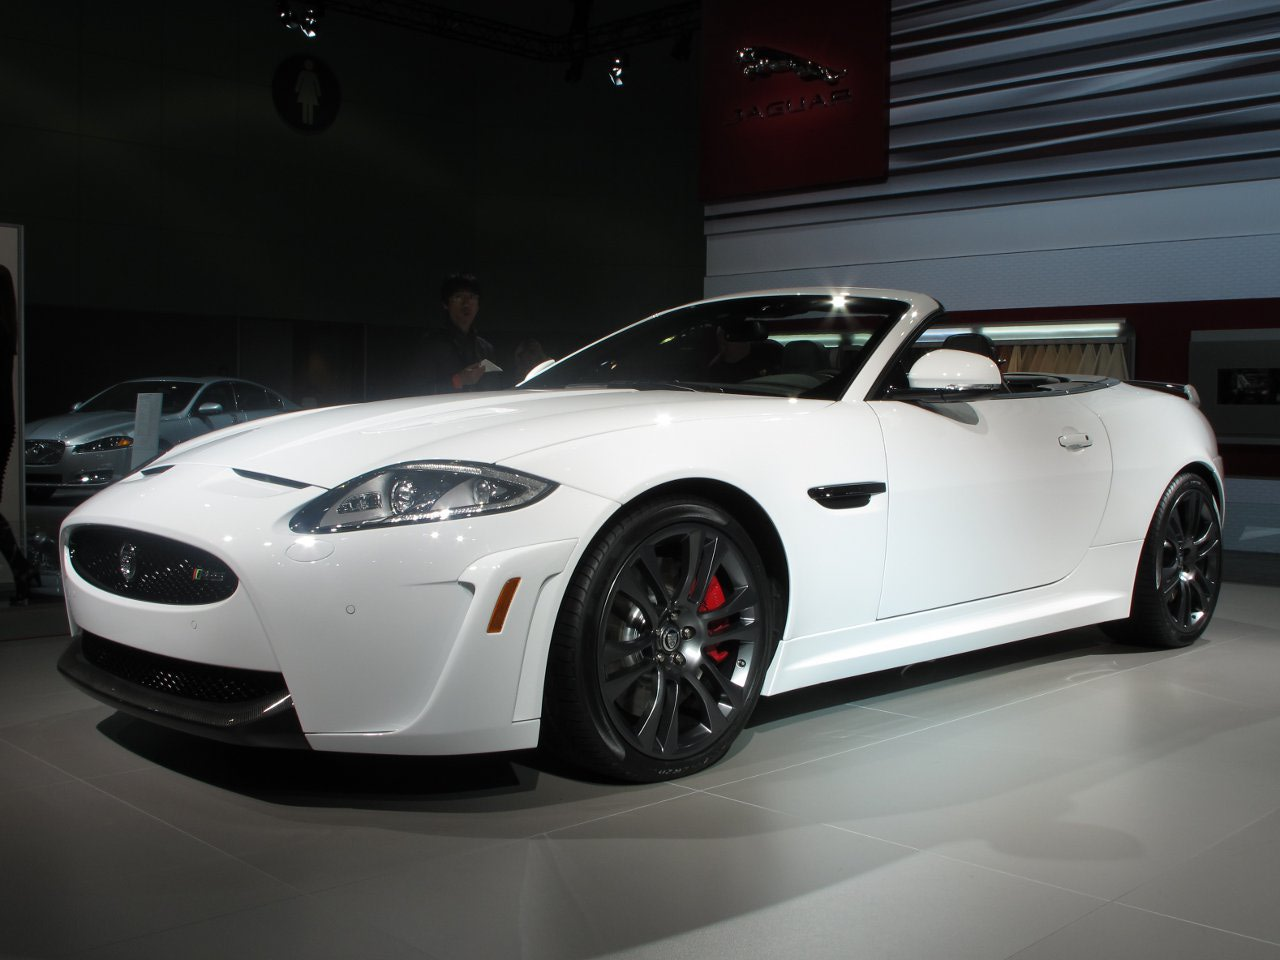 2012 Jaguar XKR-S Convertible Los Angeles Auto Show Wallpapers Desktop Download